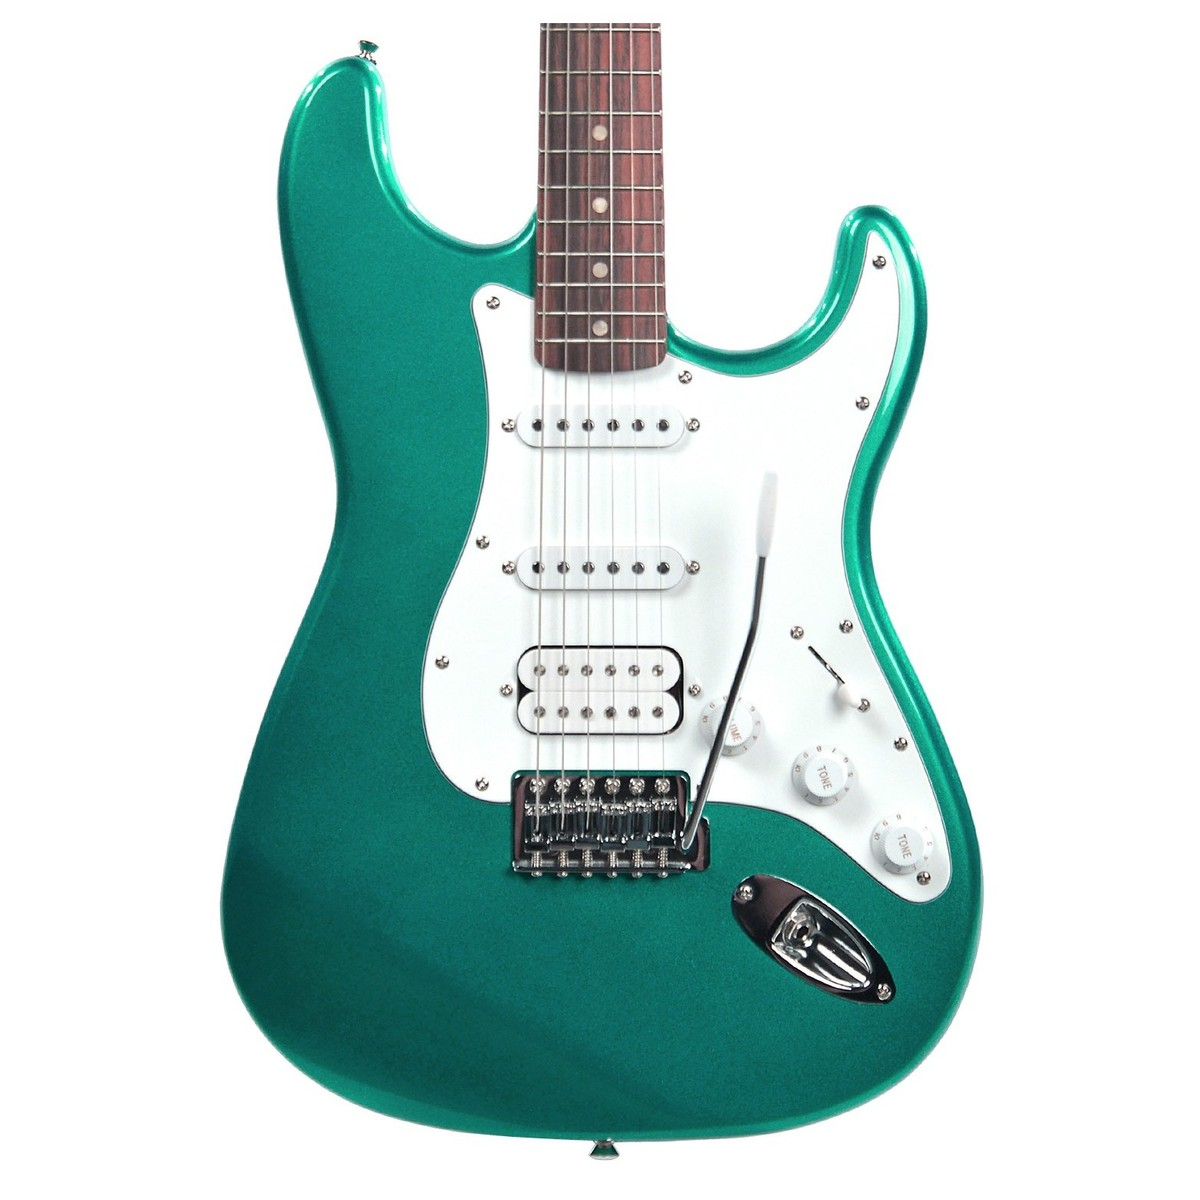 squier by fender affinity stratocaster hss race green at gear4music. Black Bedroom Furniture Sets. Home Design Ideas